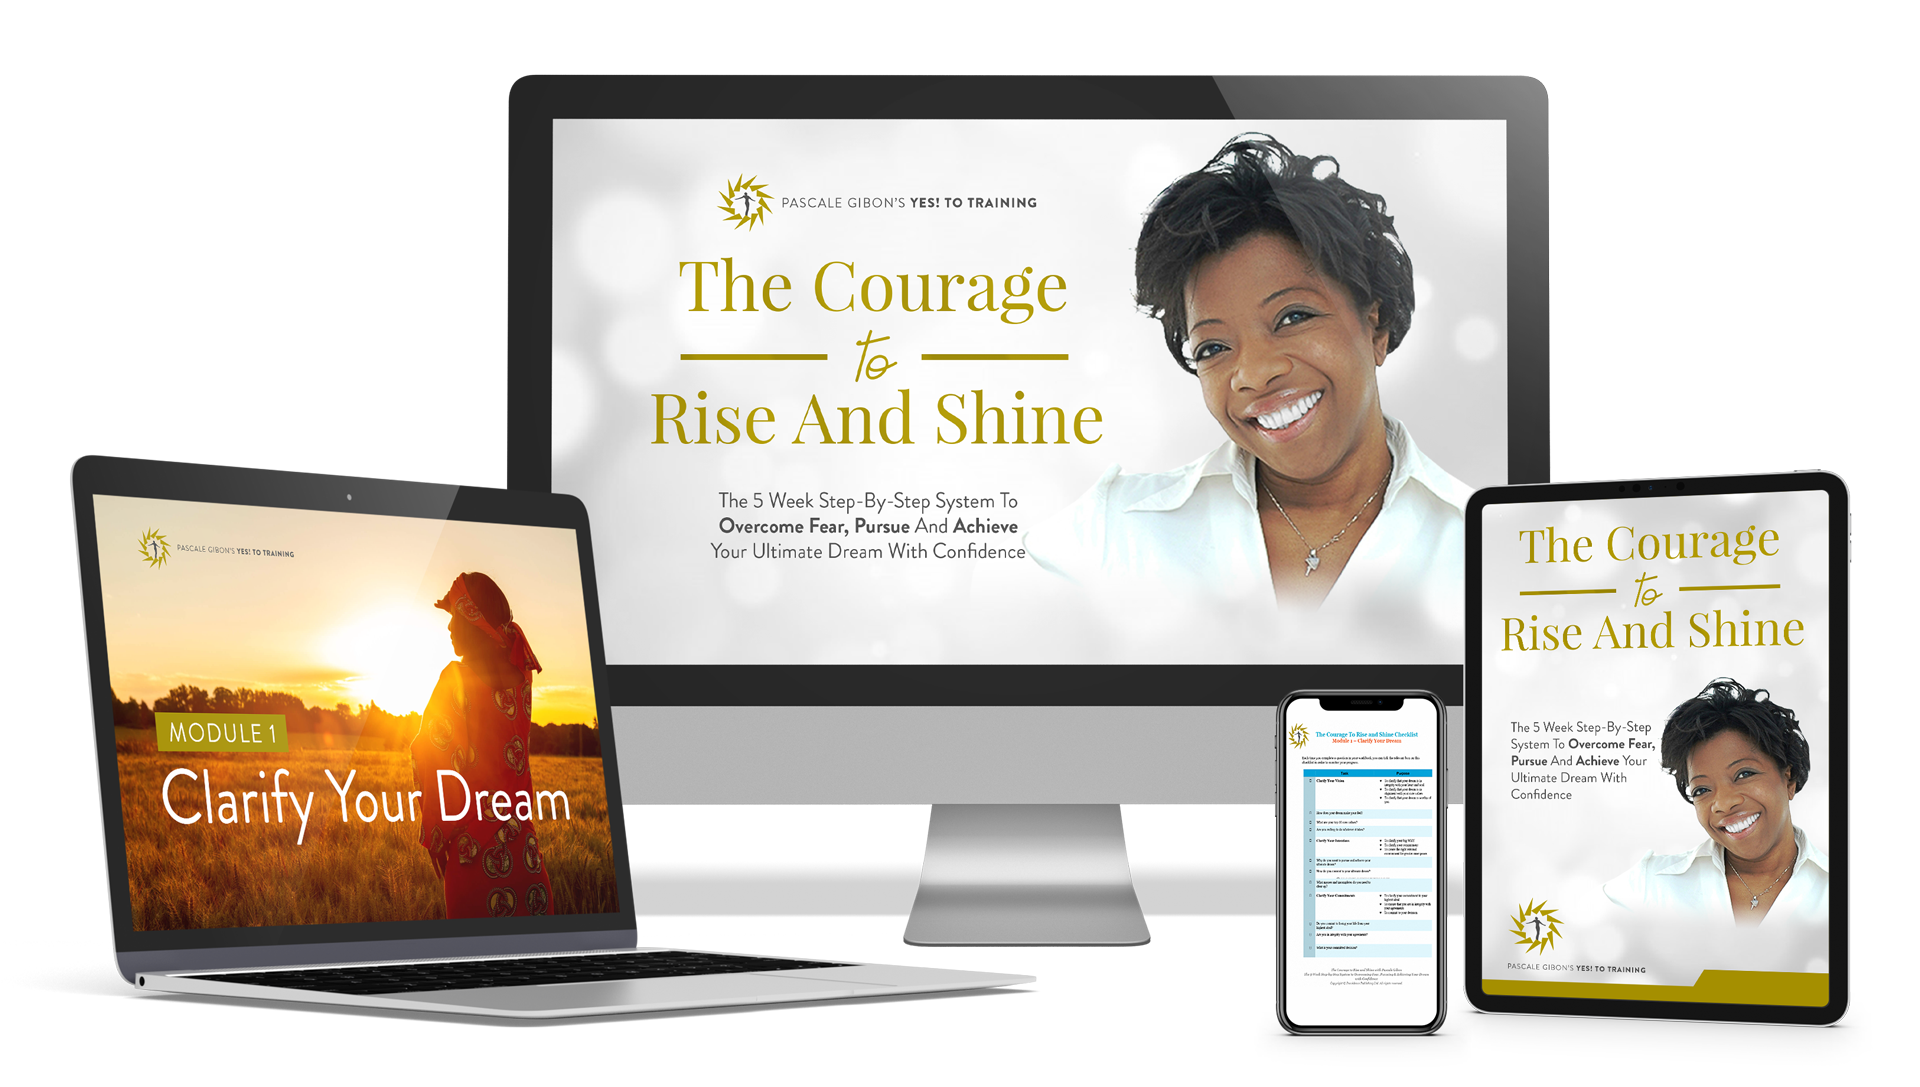 The Courage-To-rise-And-Shine. This home study course is a 5 week Step by Step System To Overcome Fear, Pursue and Achieve Your Ultimate Dream With Confidence with Pascale Gibon.